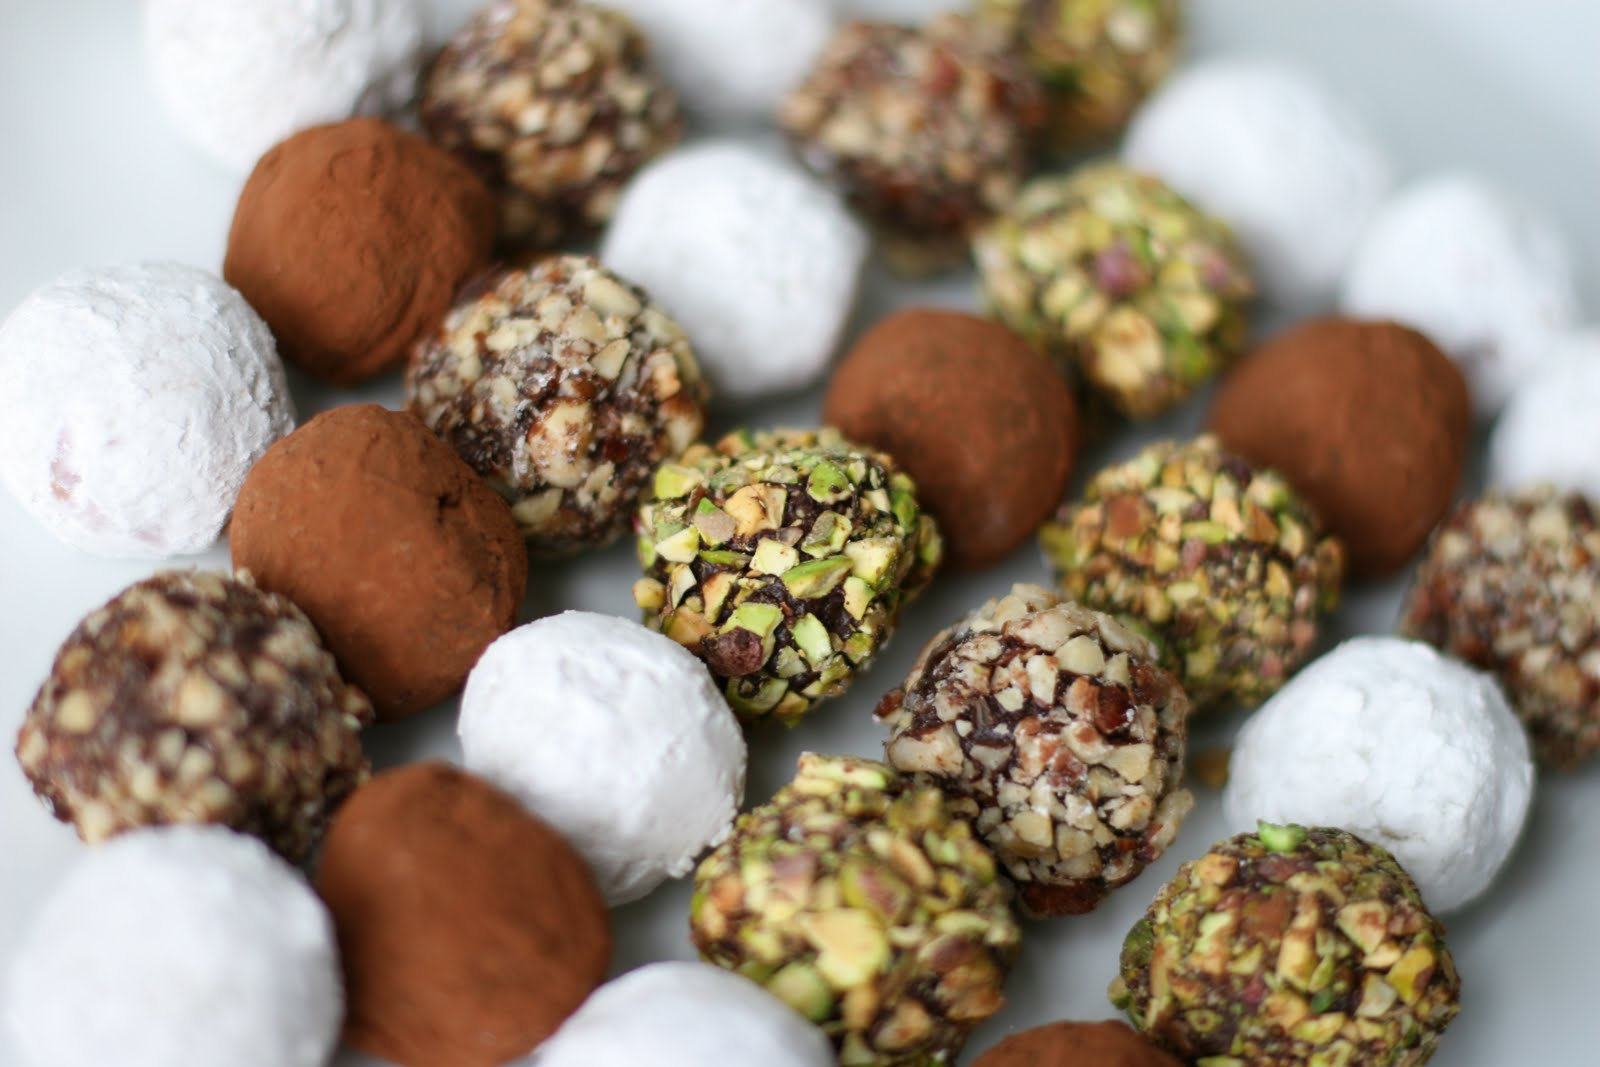 A recipe for aperture assorted chocolate truffles for White chocolate truffles recipe uk